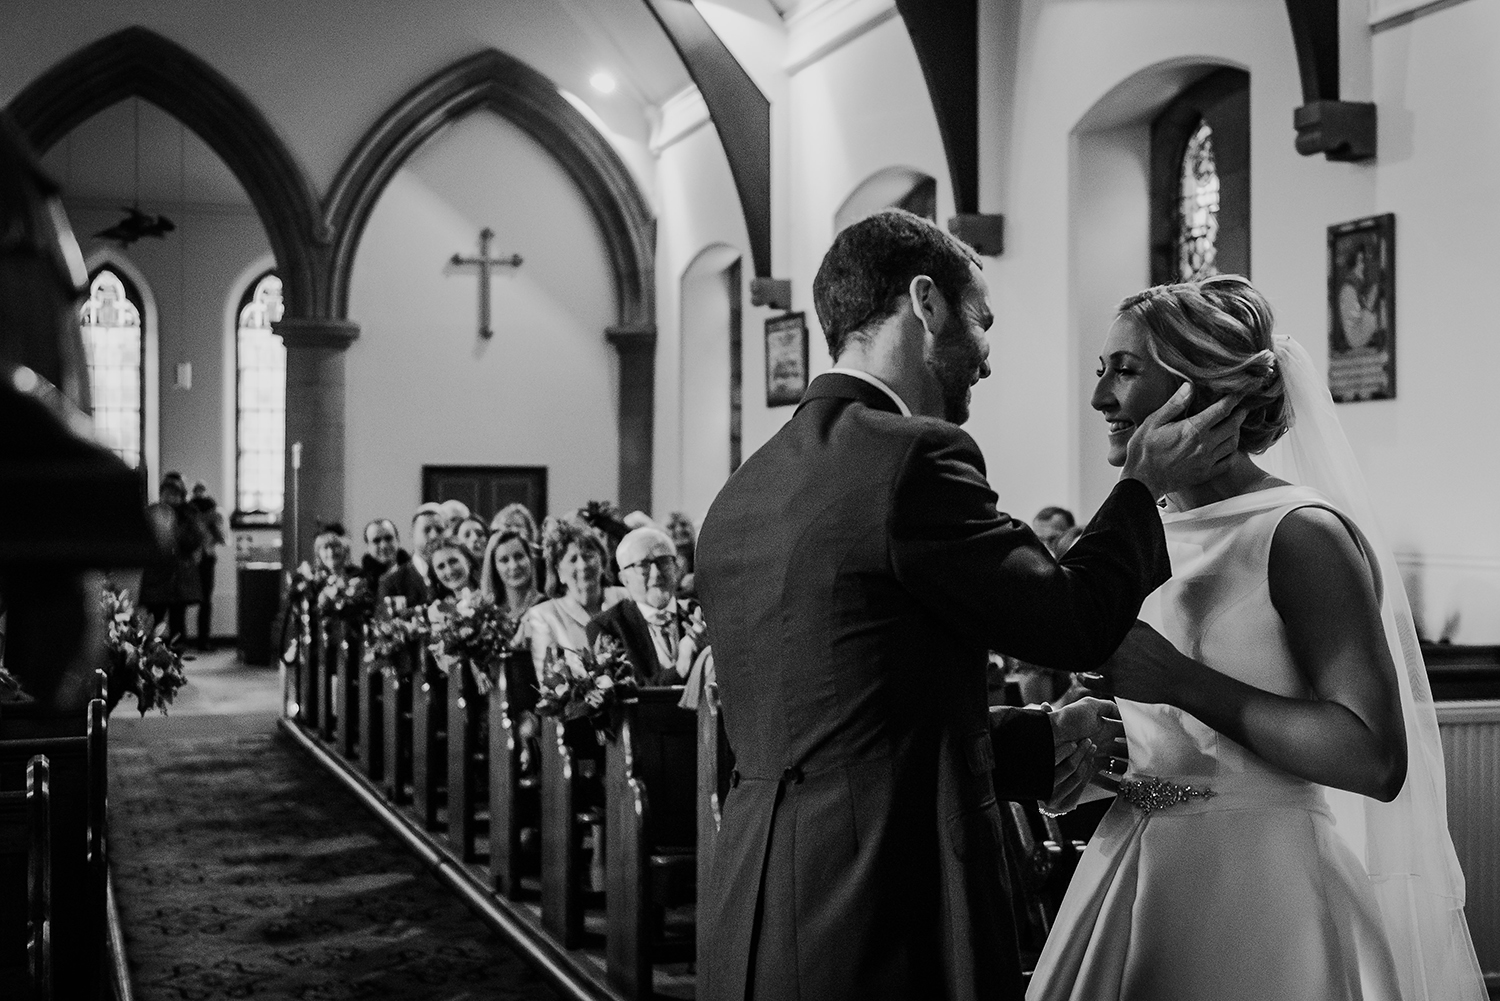 Black and white photo of the grooms hand on the brides face about to kiss